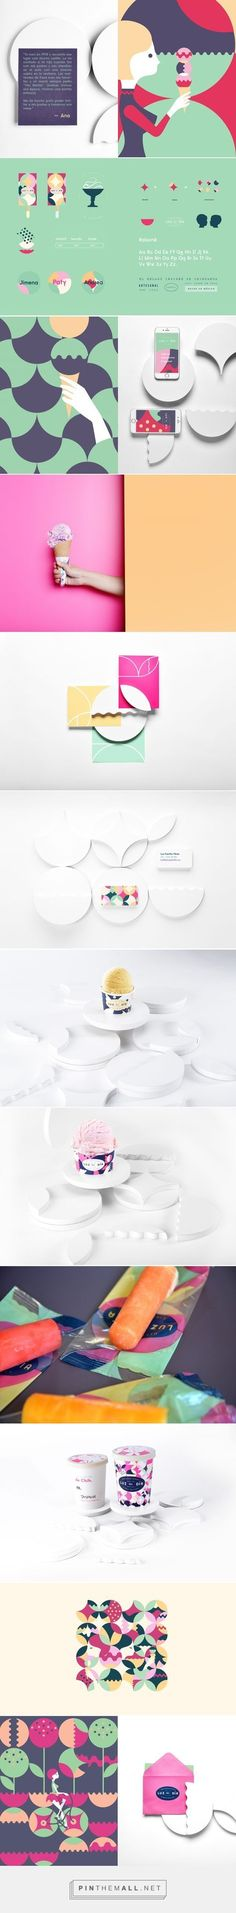 La luz del Día / ice cream by Estudio Yeyé